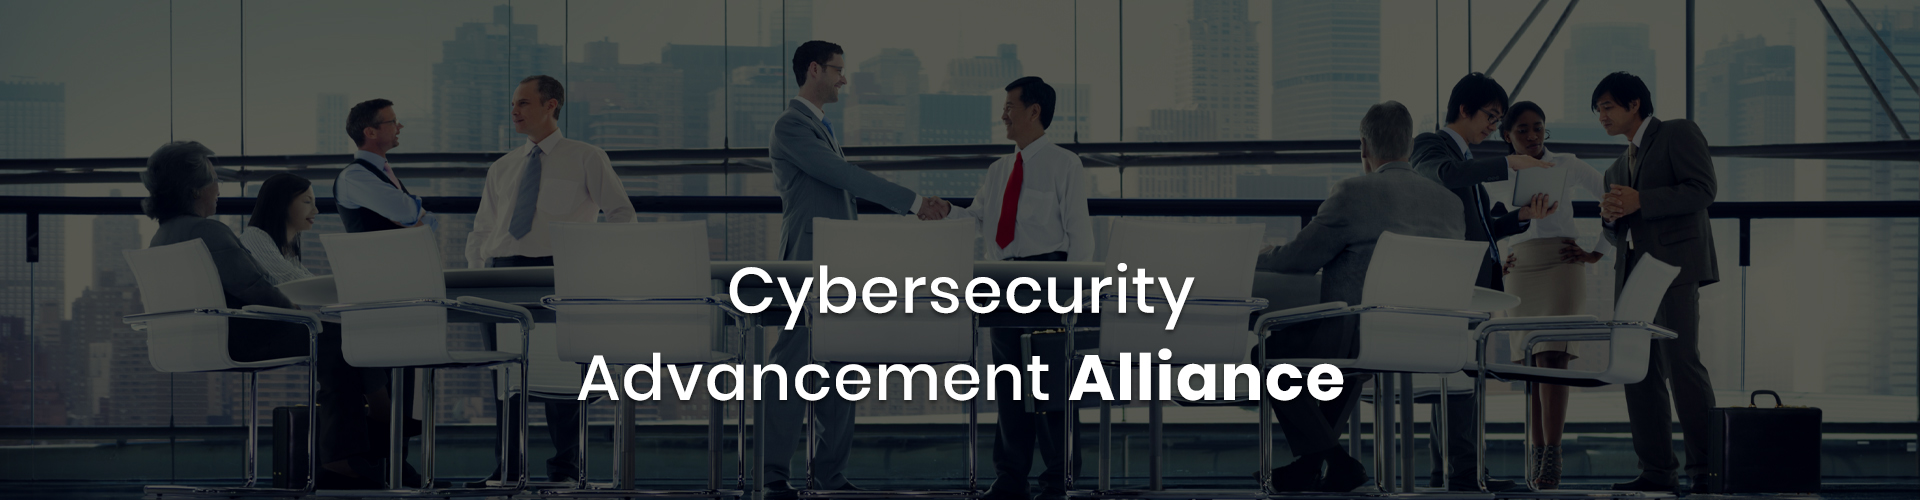 Cybersecurity Advancement Alliance01